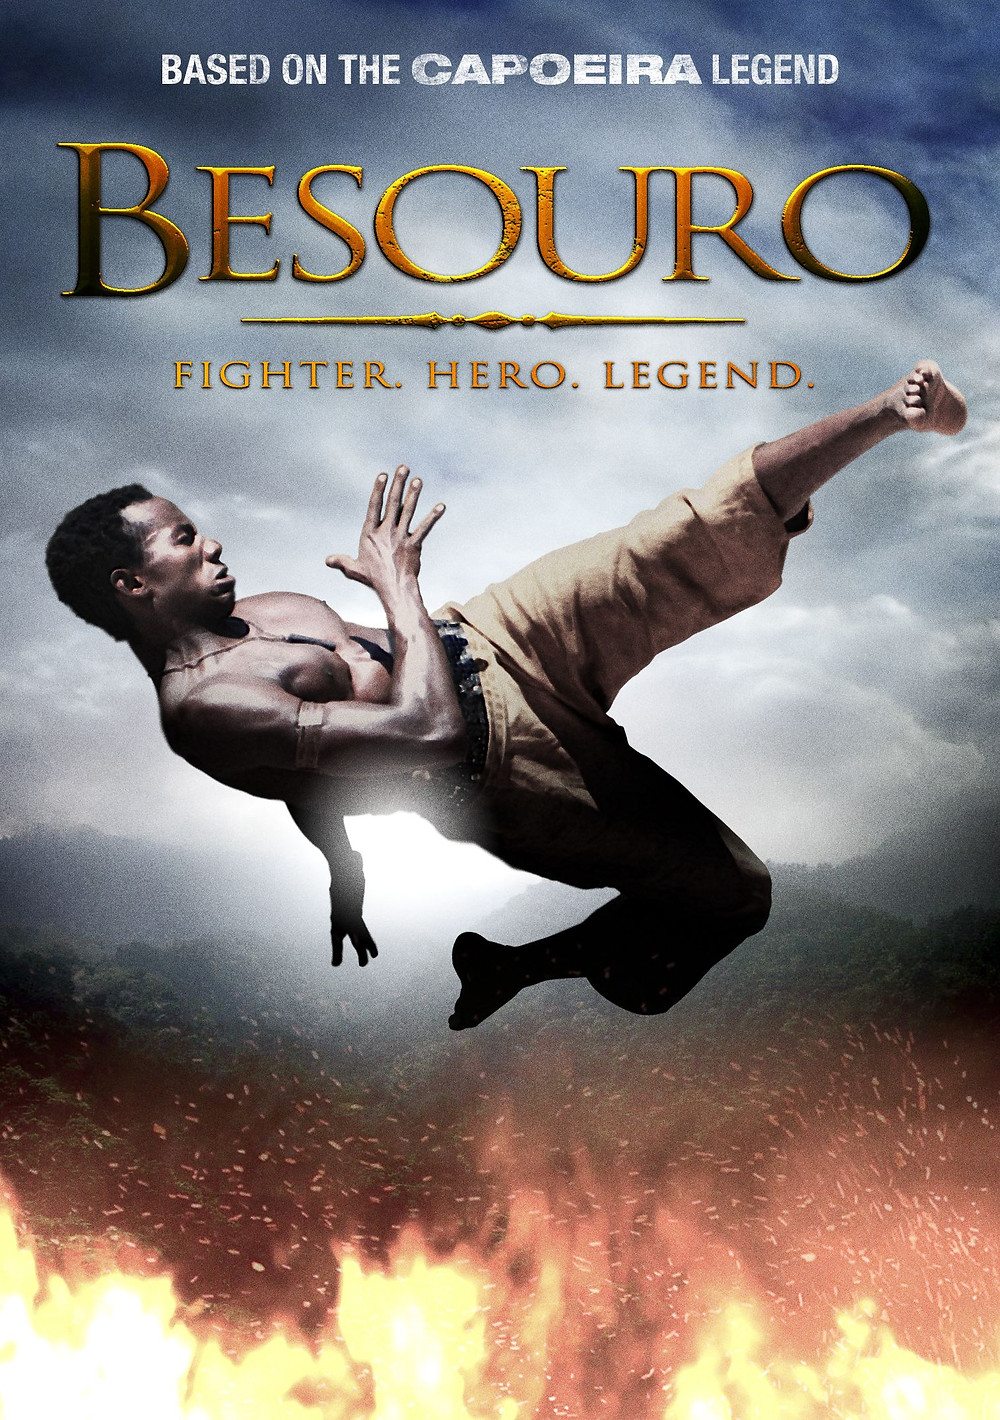 capoeira besouro movie